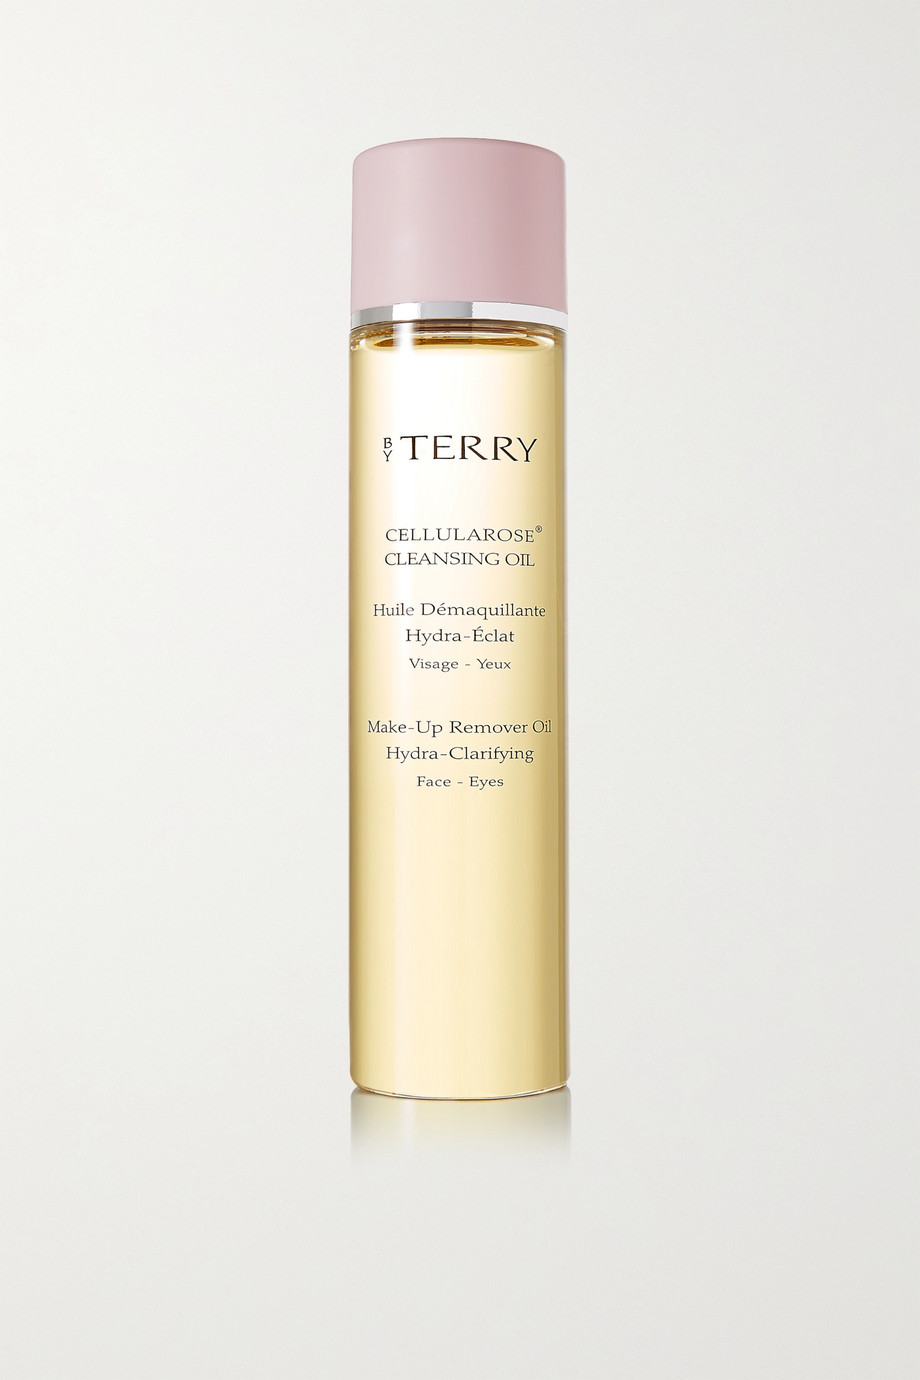 Cellularose Cleansing Oil, 150ml, by By Terry